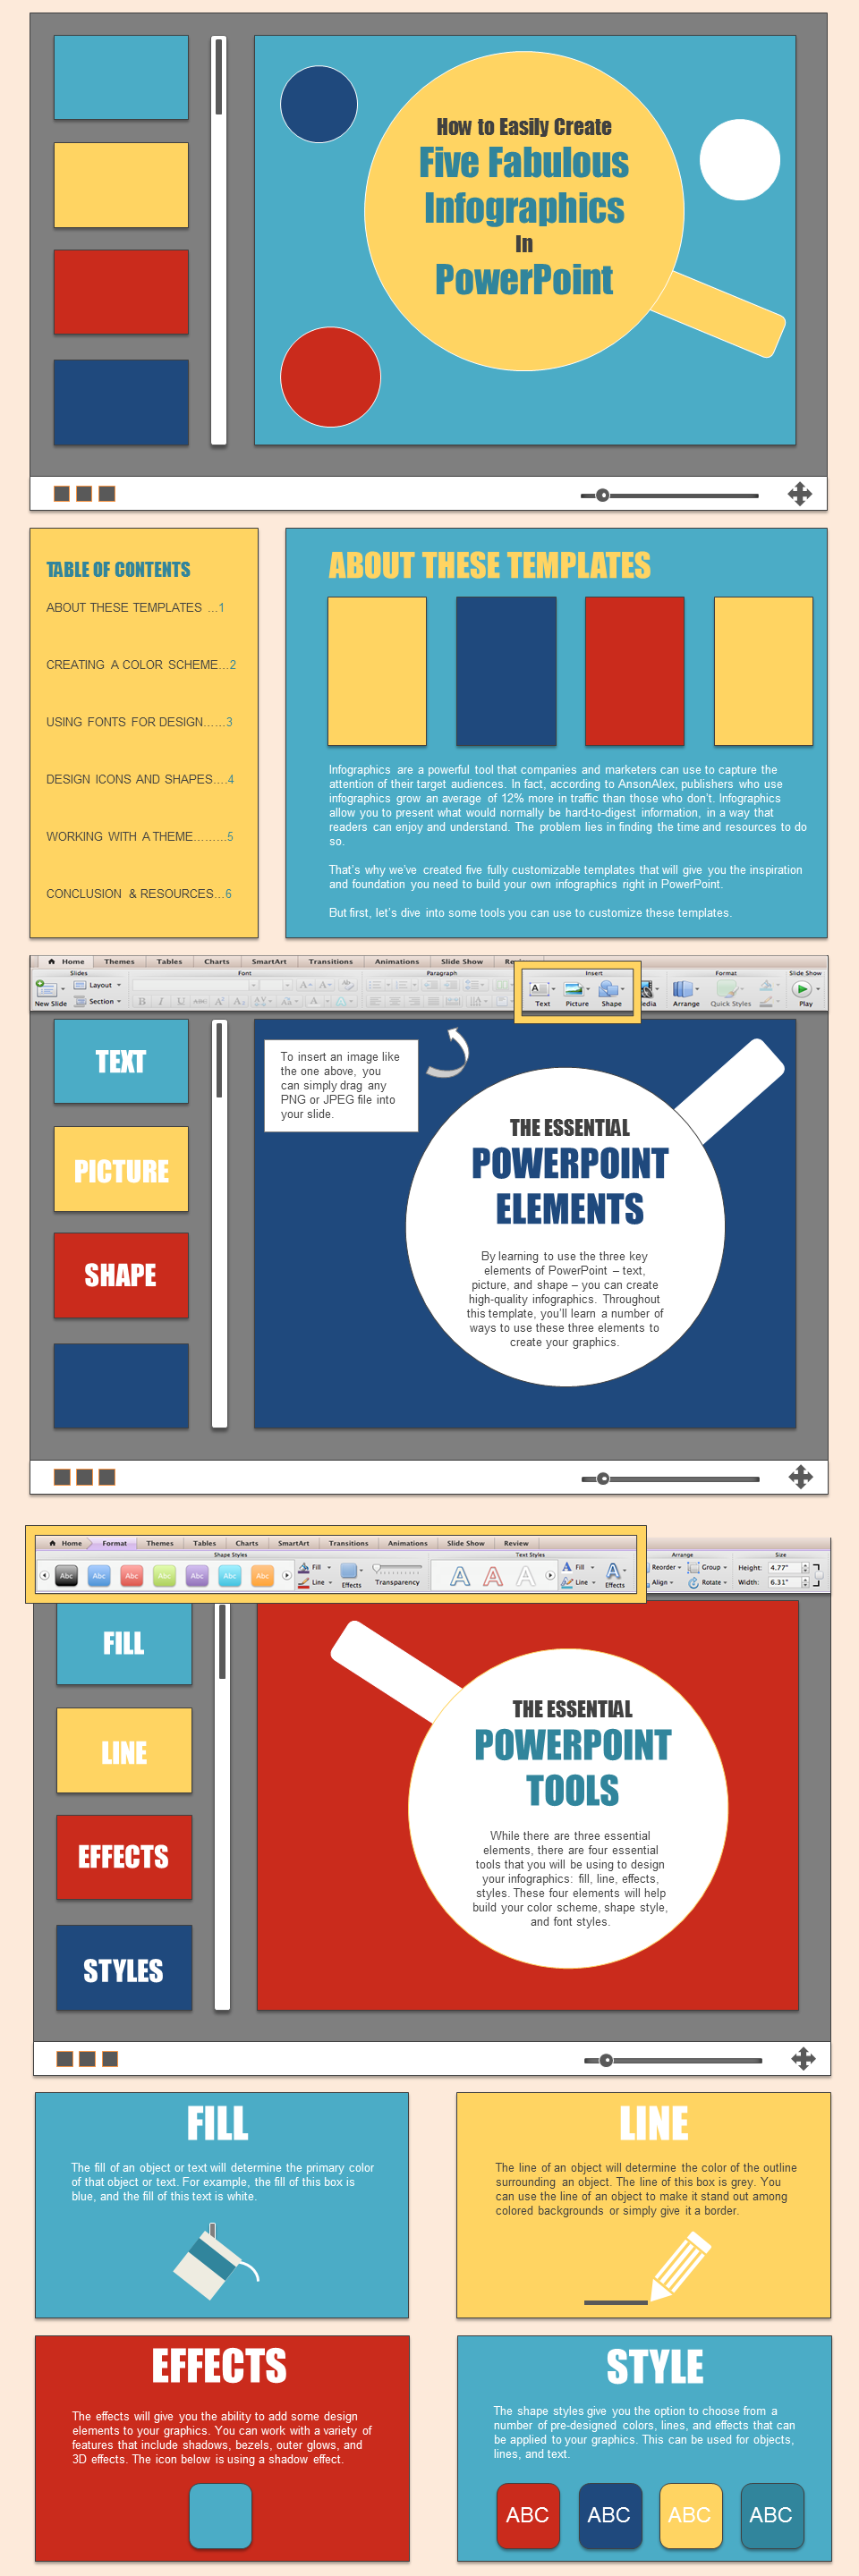 how to design your own powerpoint template - 5 infographics to teach you how to easily make